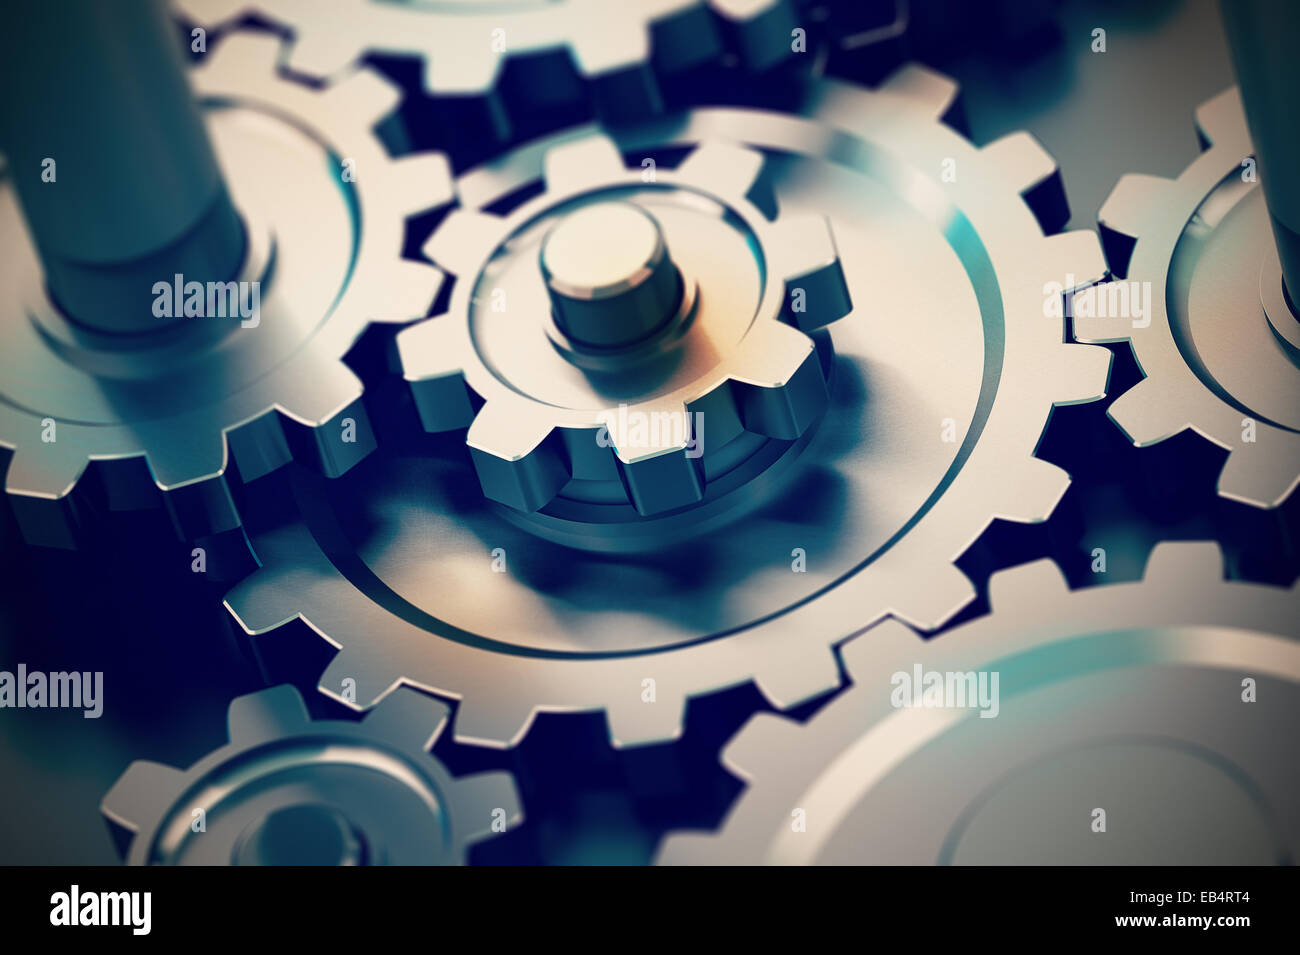 gear or cogwheel working together, movement transmission. Concept of teamwork - Stock Image